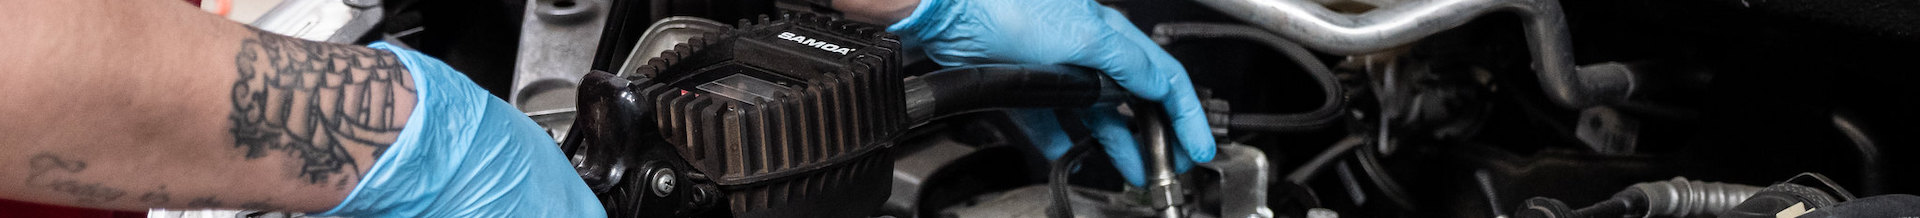 https://autotechrecruit.co.uk/wp-content/uploads/2019/07/Autotech-Recruit-Technicial-repairing-car.jpg